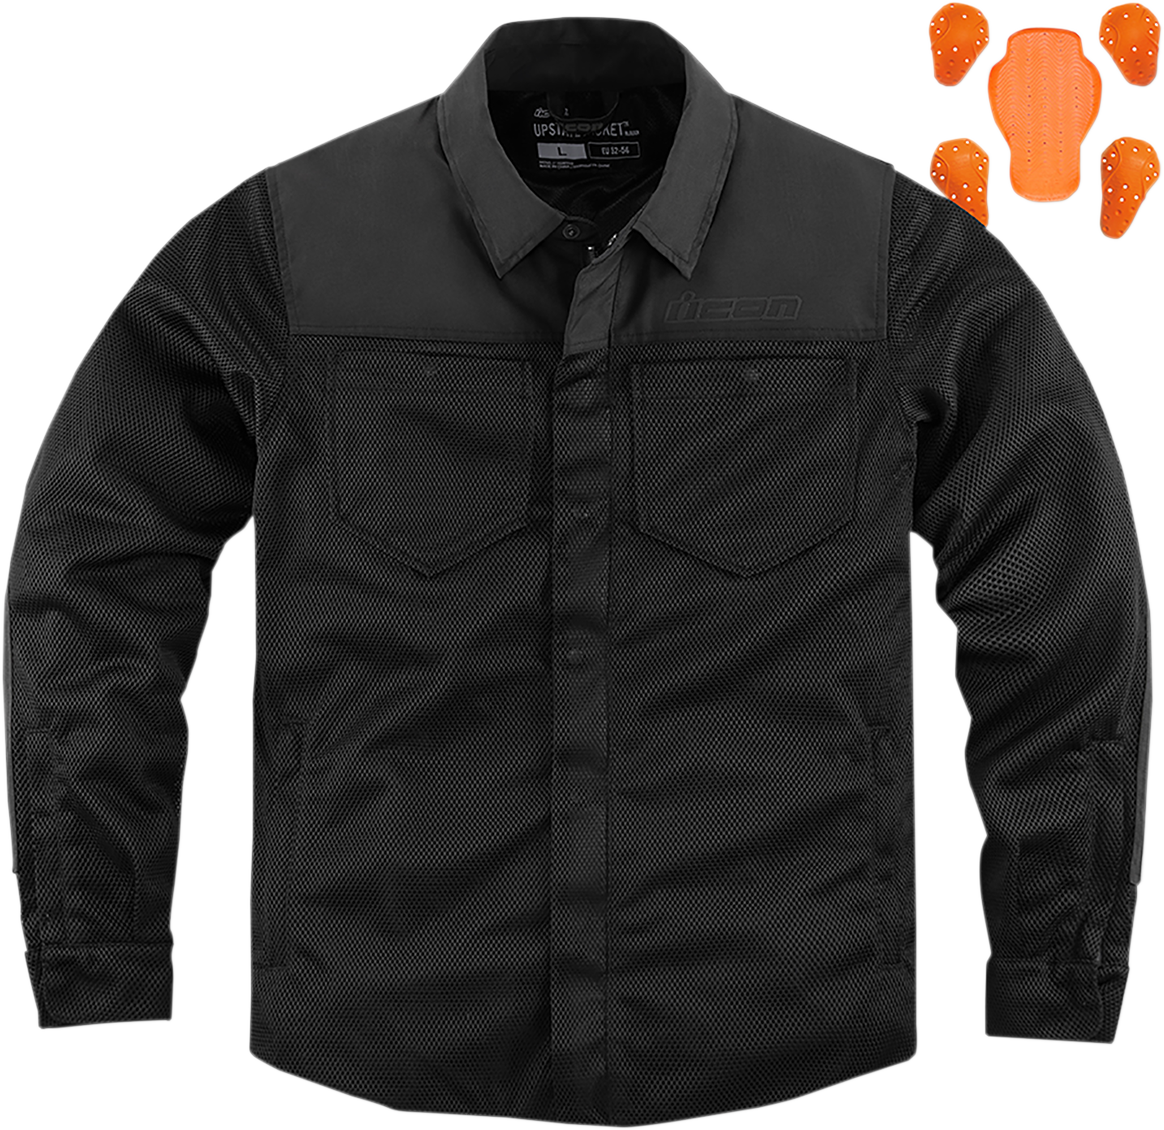 Icon Mens Textile Black Upstate Motorcycle Riding Street Racing Armored Jacket